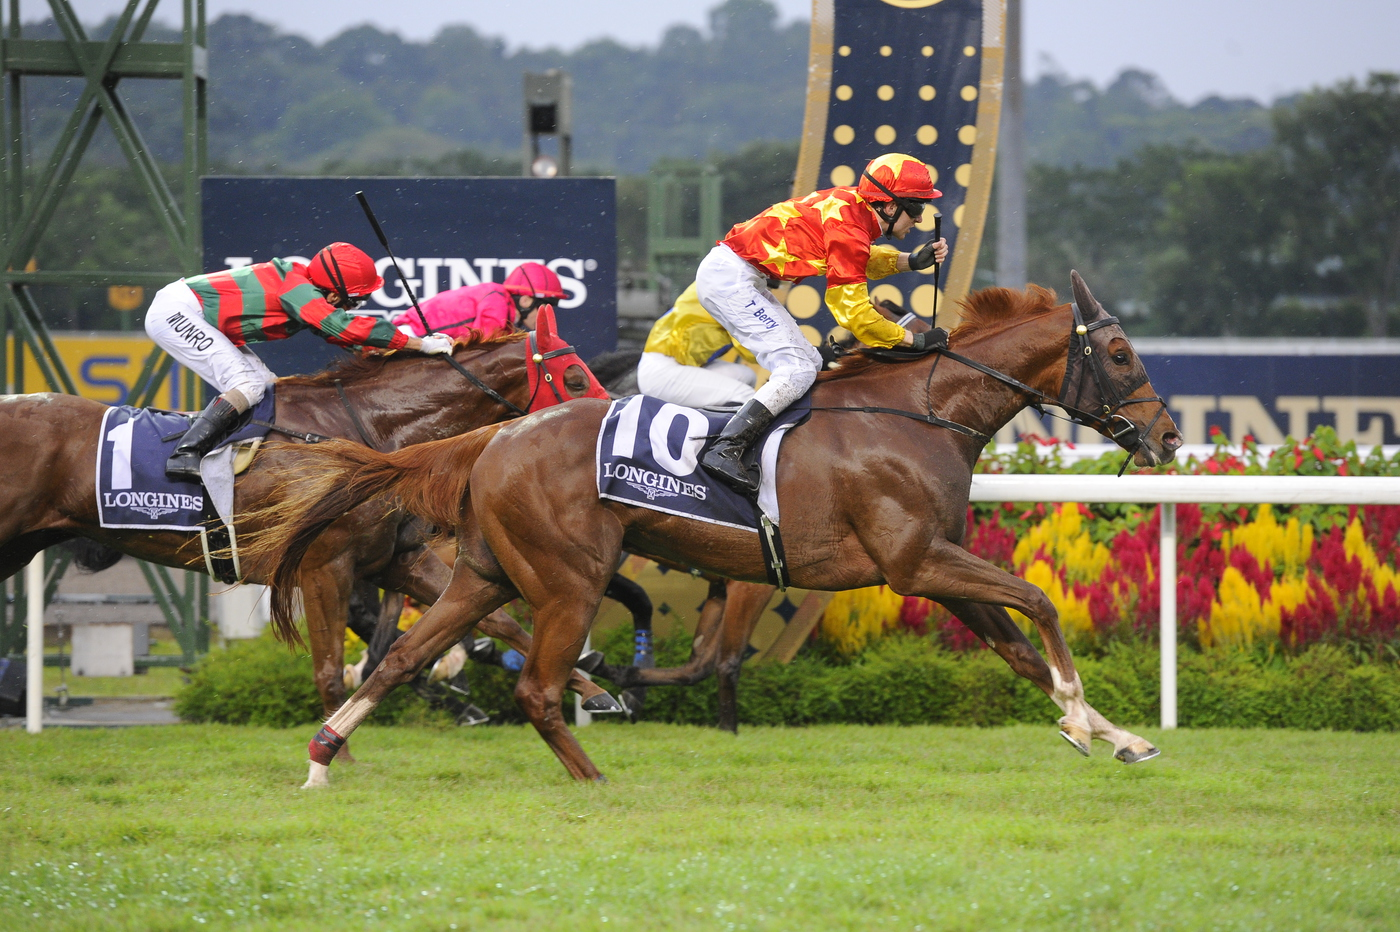 Longines Flat Racing Event: The prestigious Longines Singapore Gold Cup 2013 raises S$374,483 for charity 5